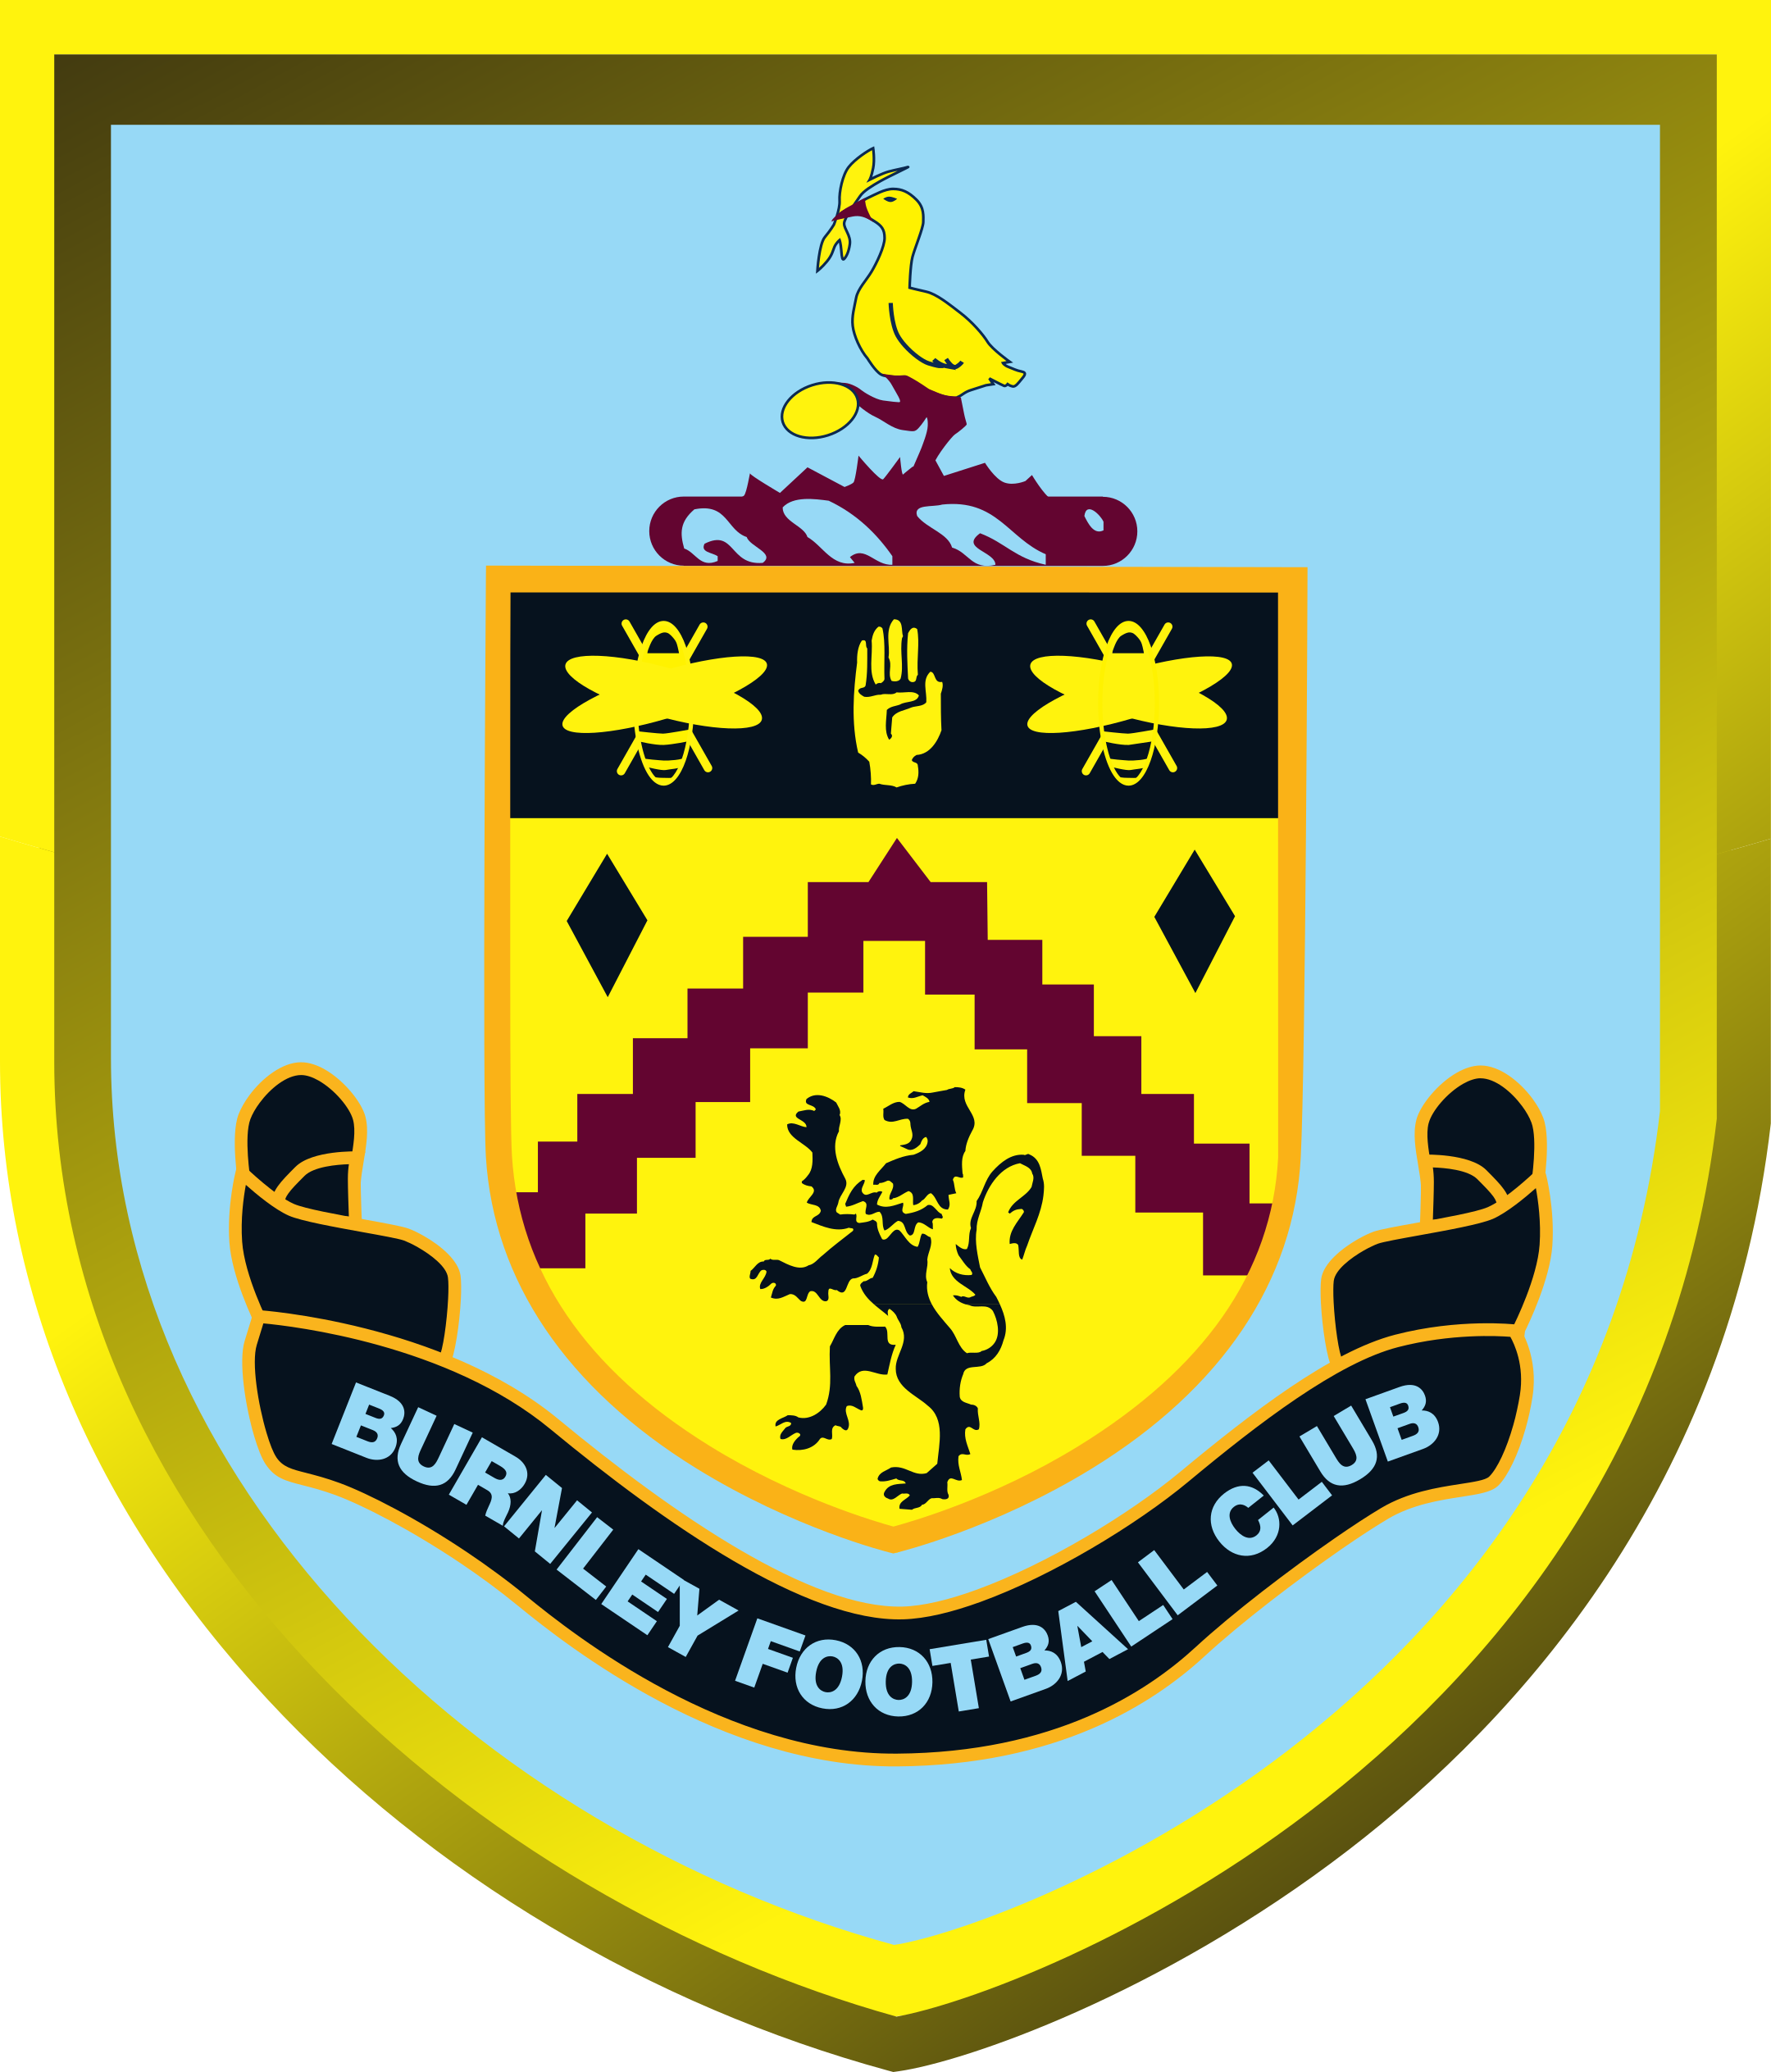 burnley logo 1 - Burnley FC Logo